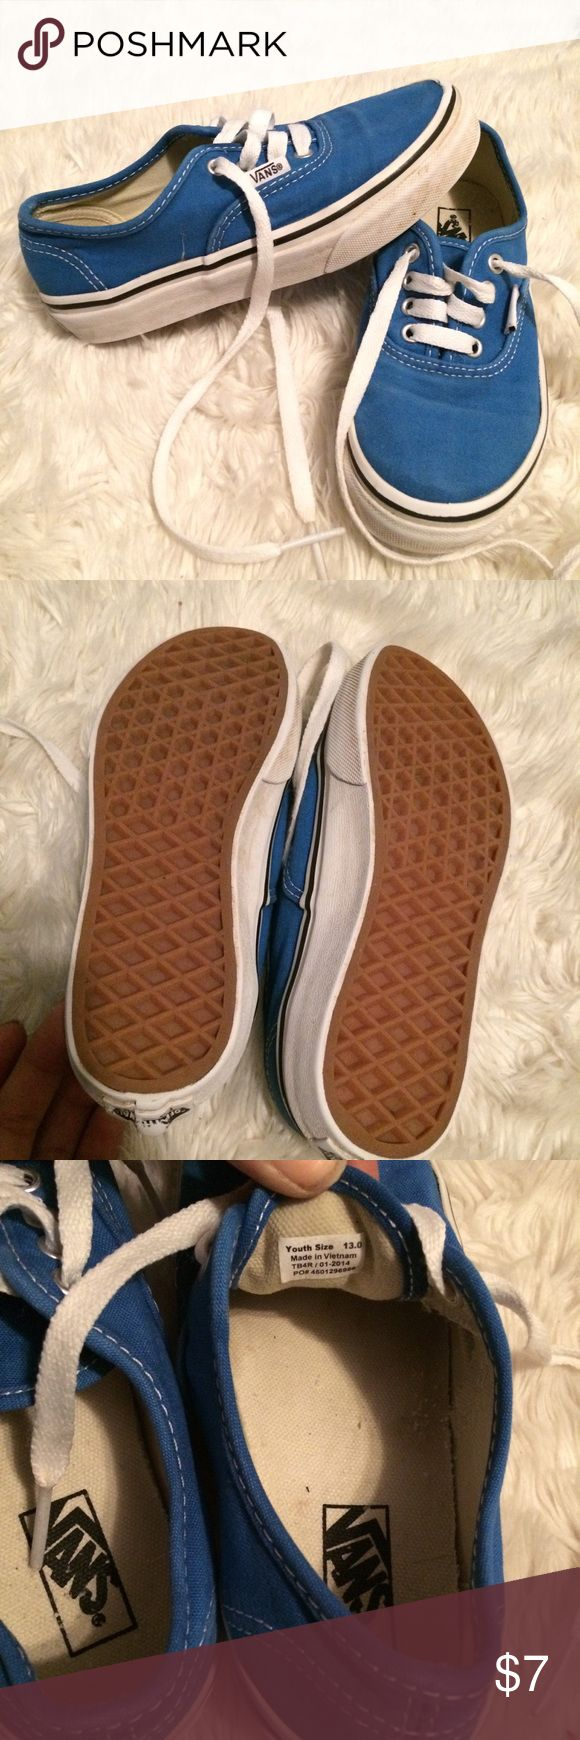 Kids blue vans shoes size 13 Blue  vans sneaker shoes  Size 13 toddler  For boys or girls  In good used condition some marks on white trim from use has been washed and ready to ship #asis #girls #vans #shoes #sneakers #casual #basic #solid #pink Shoes Sneakers